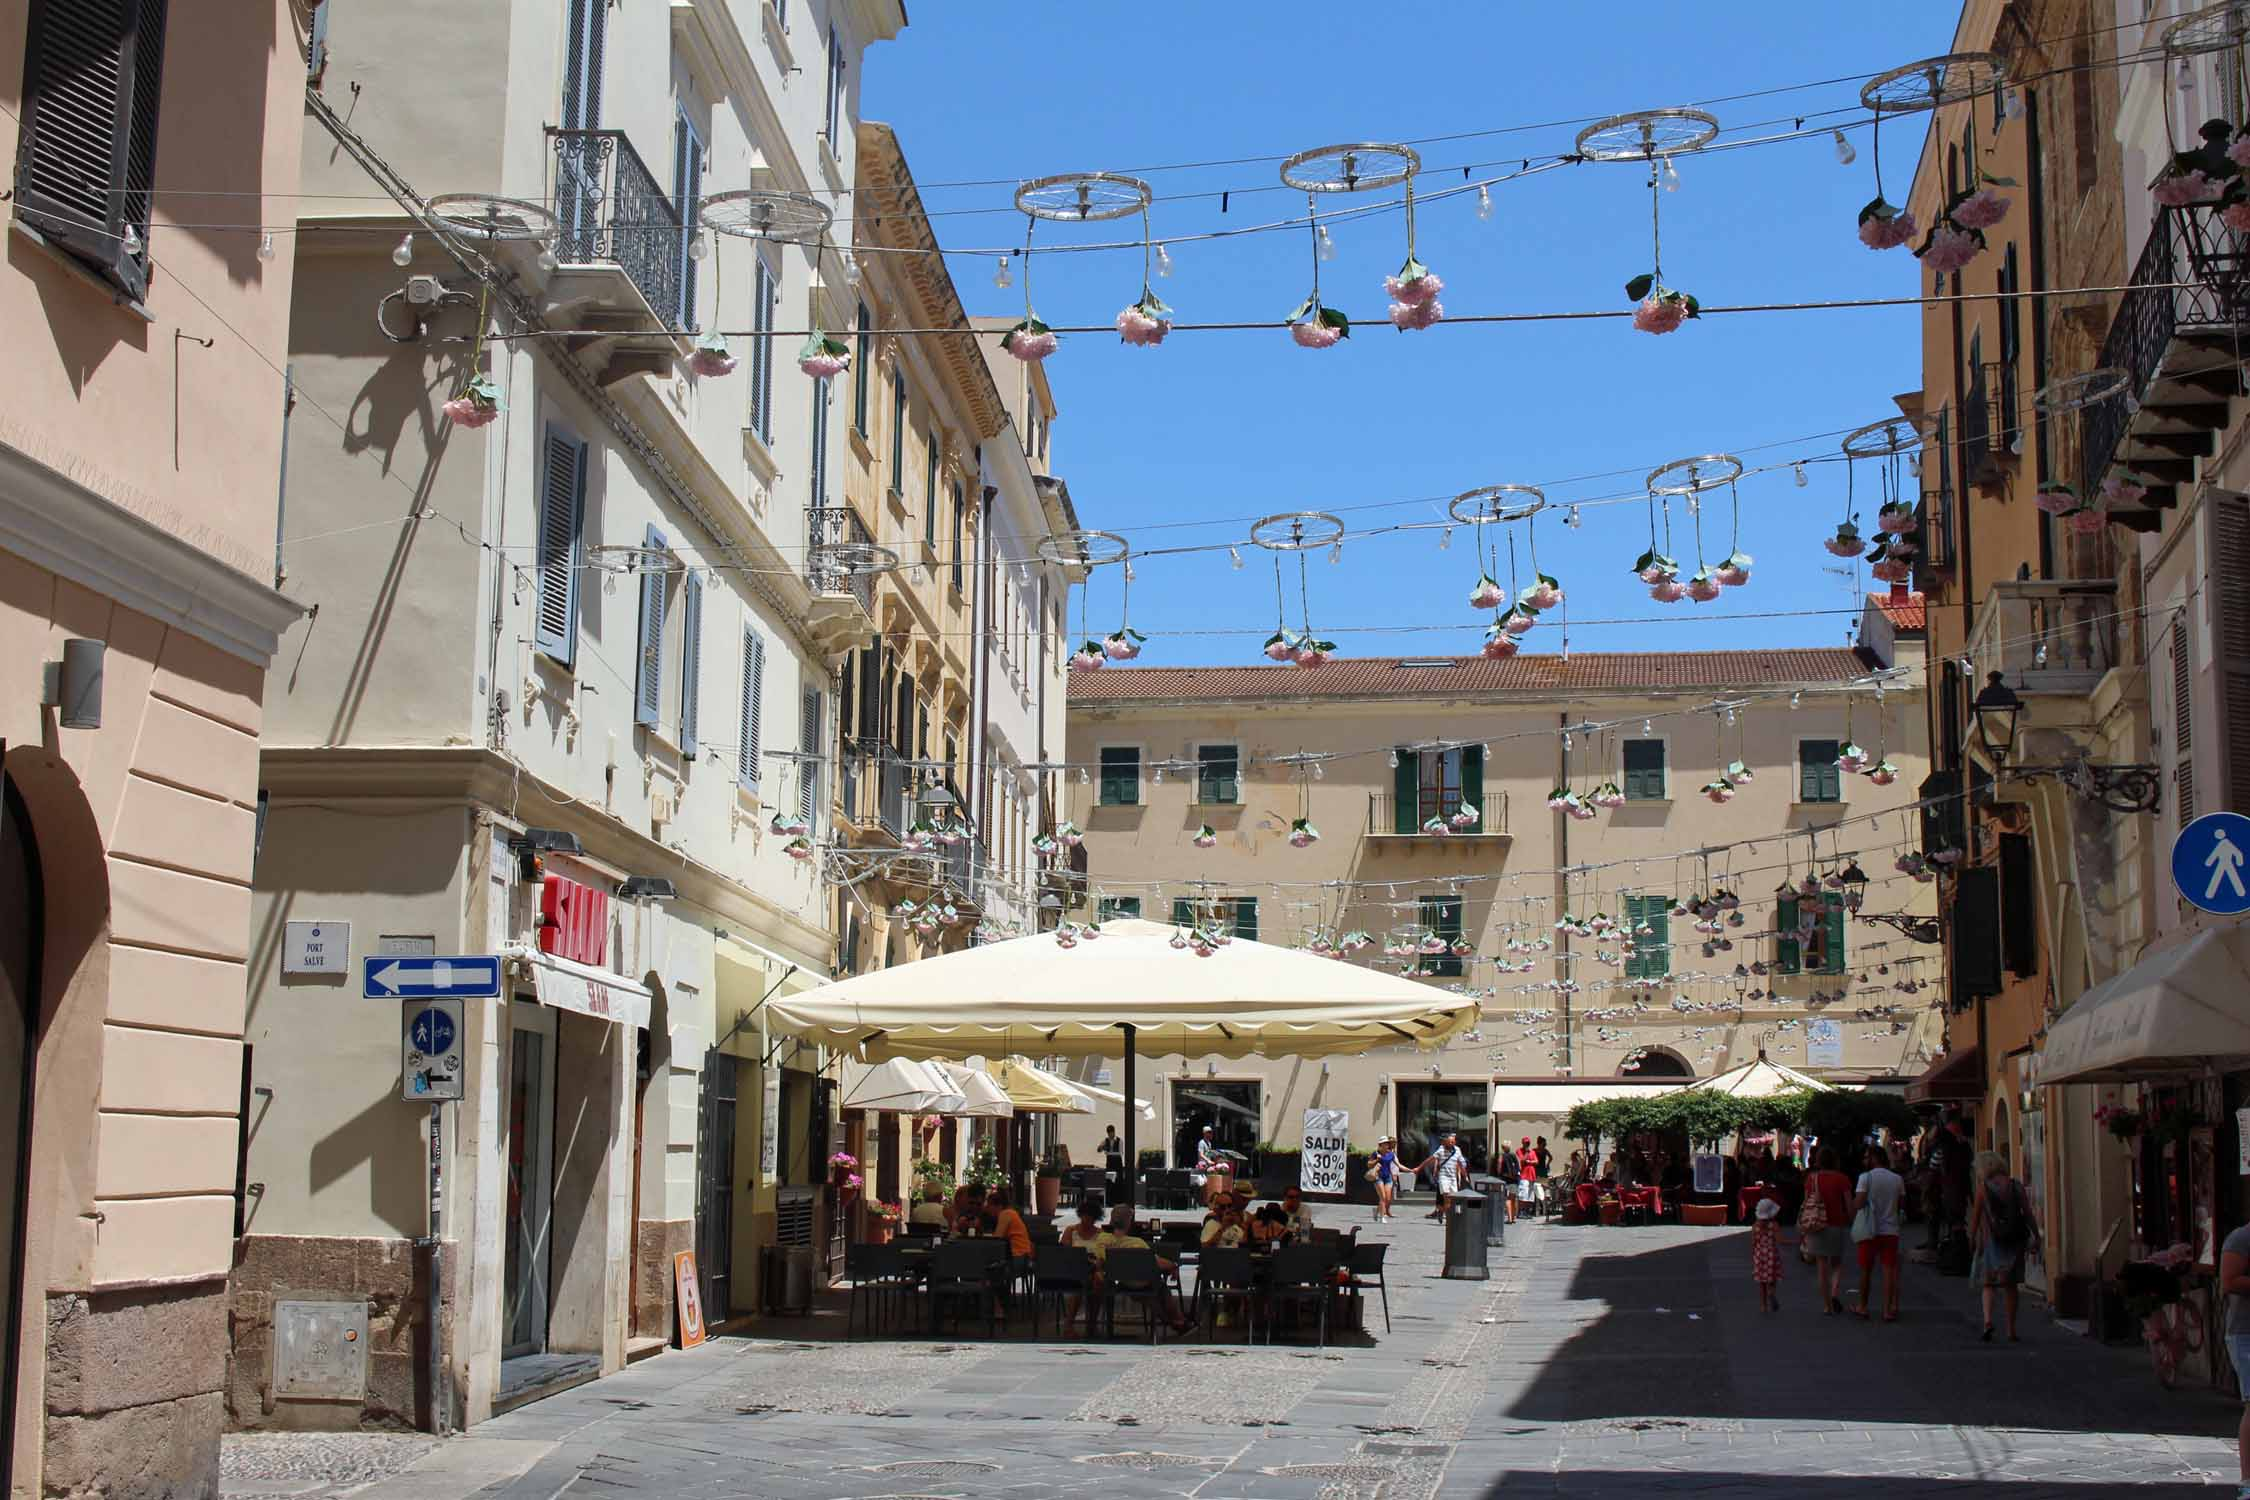 Alghero, Civic square